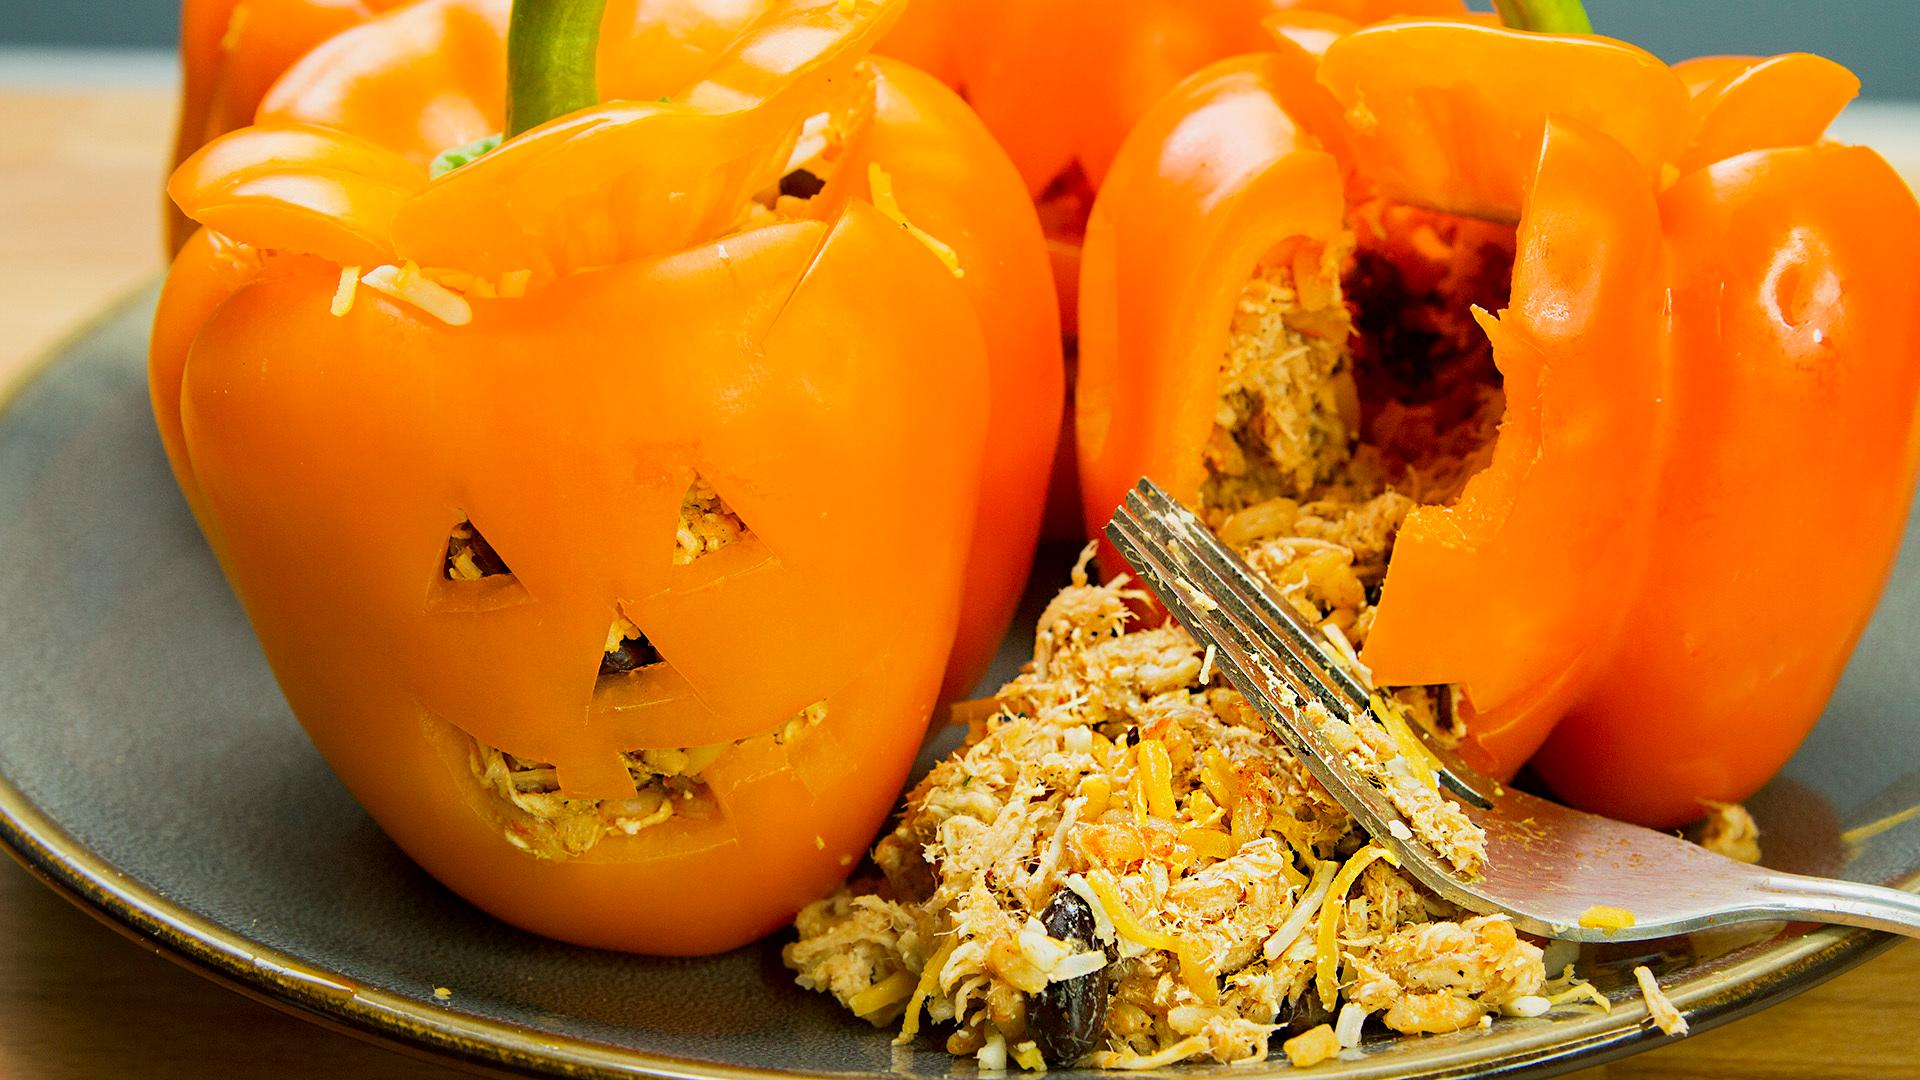 How to Make Stuffed Bell Peppers Jack O' Lantern Style